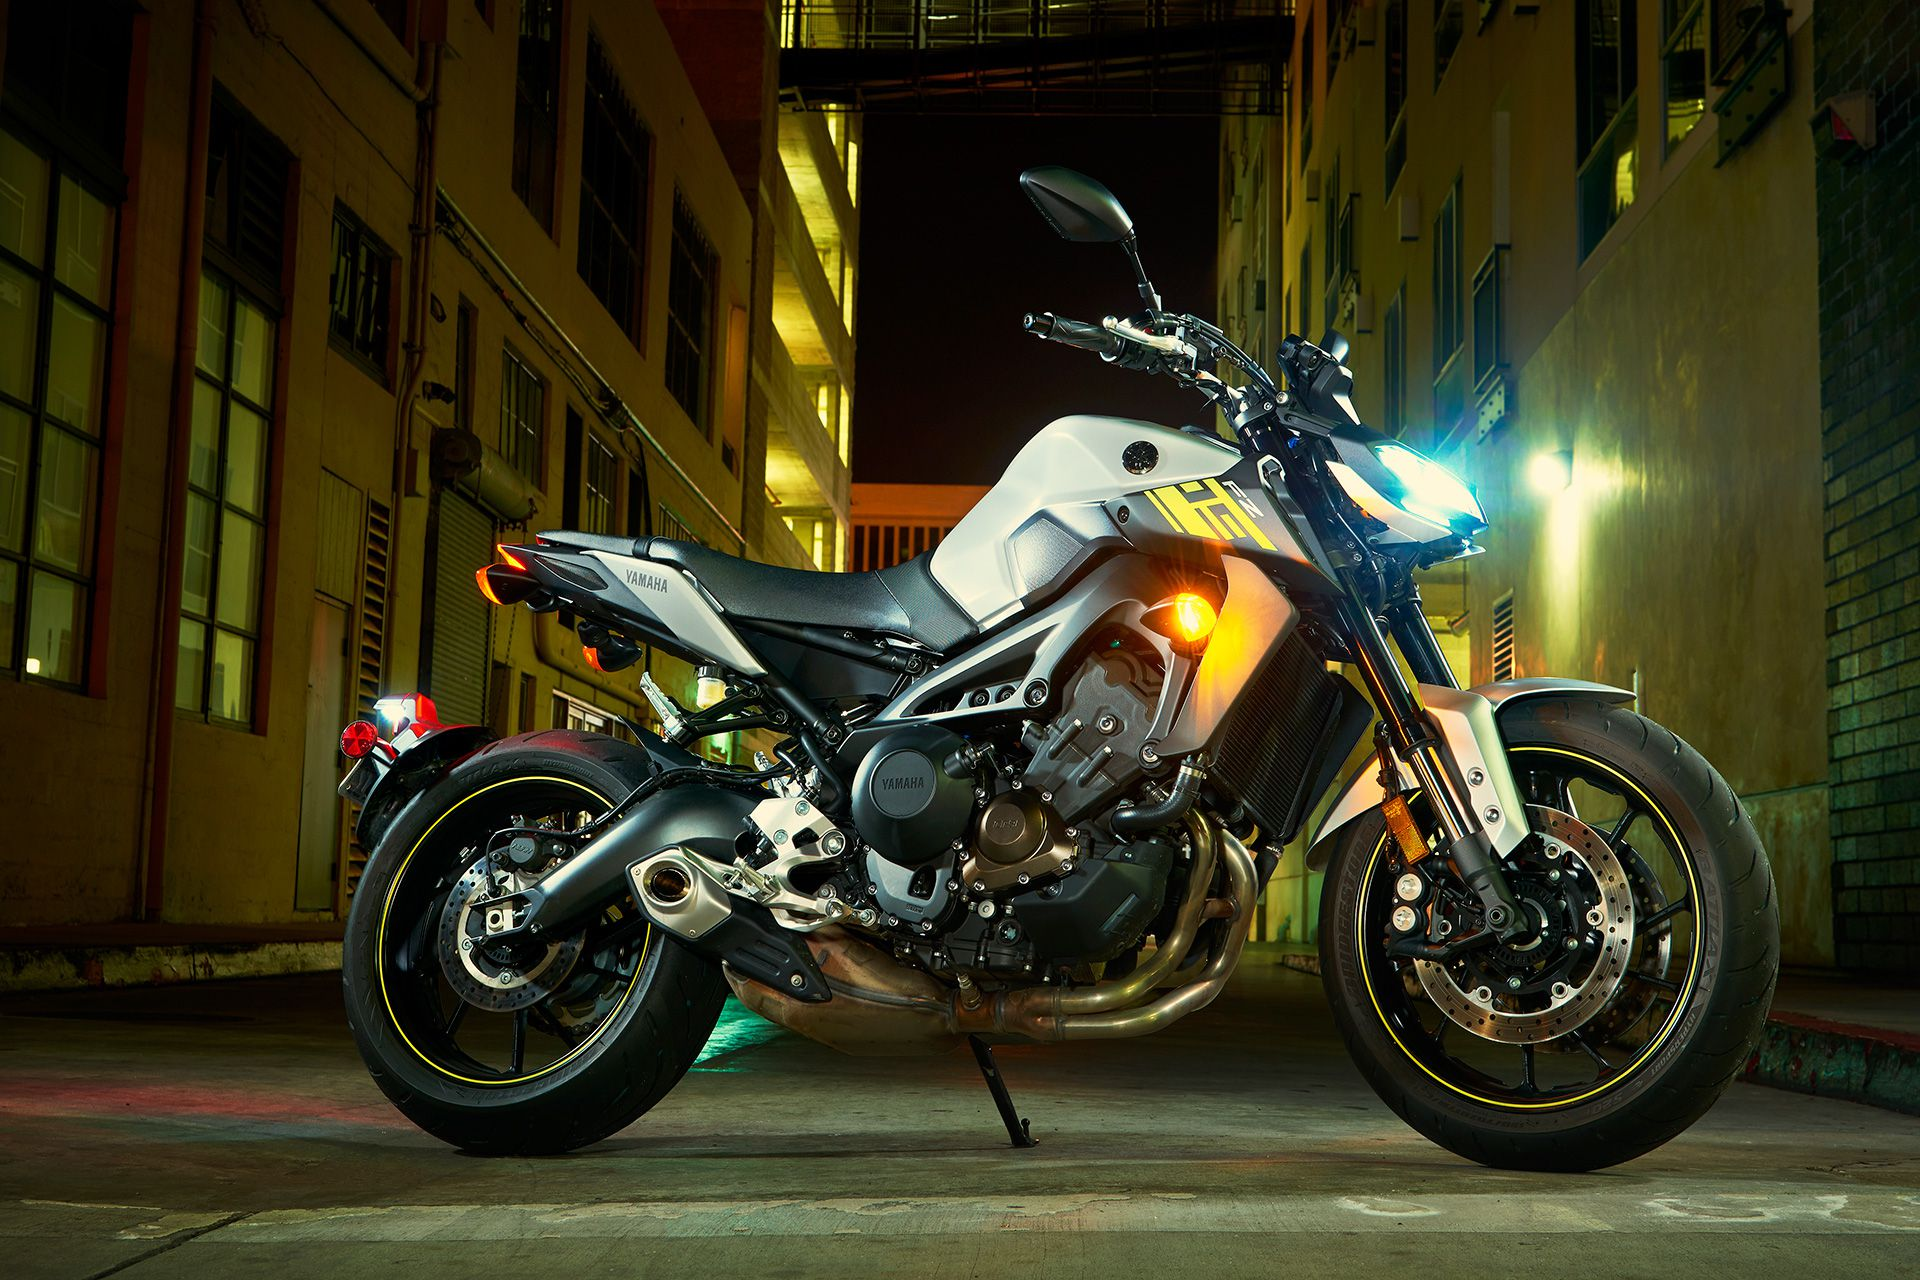 2017 Yamaha FZ-09 Naked Sportbike Motorcycle Review | Cycle World